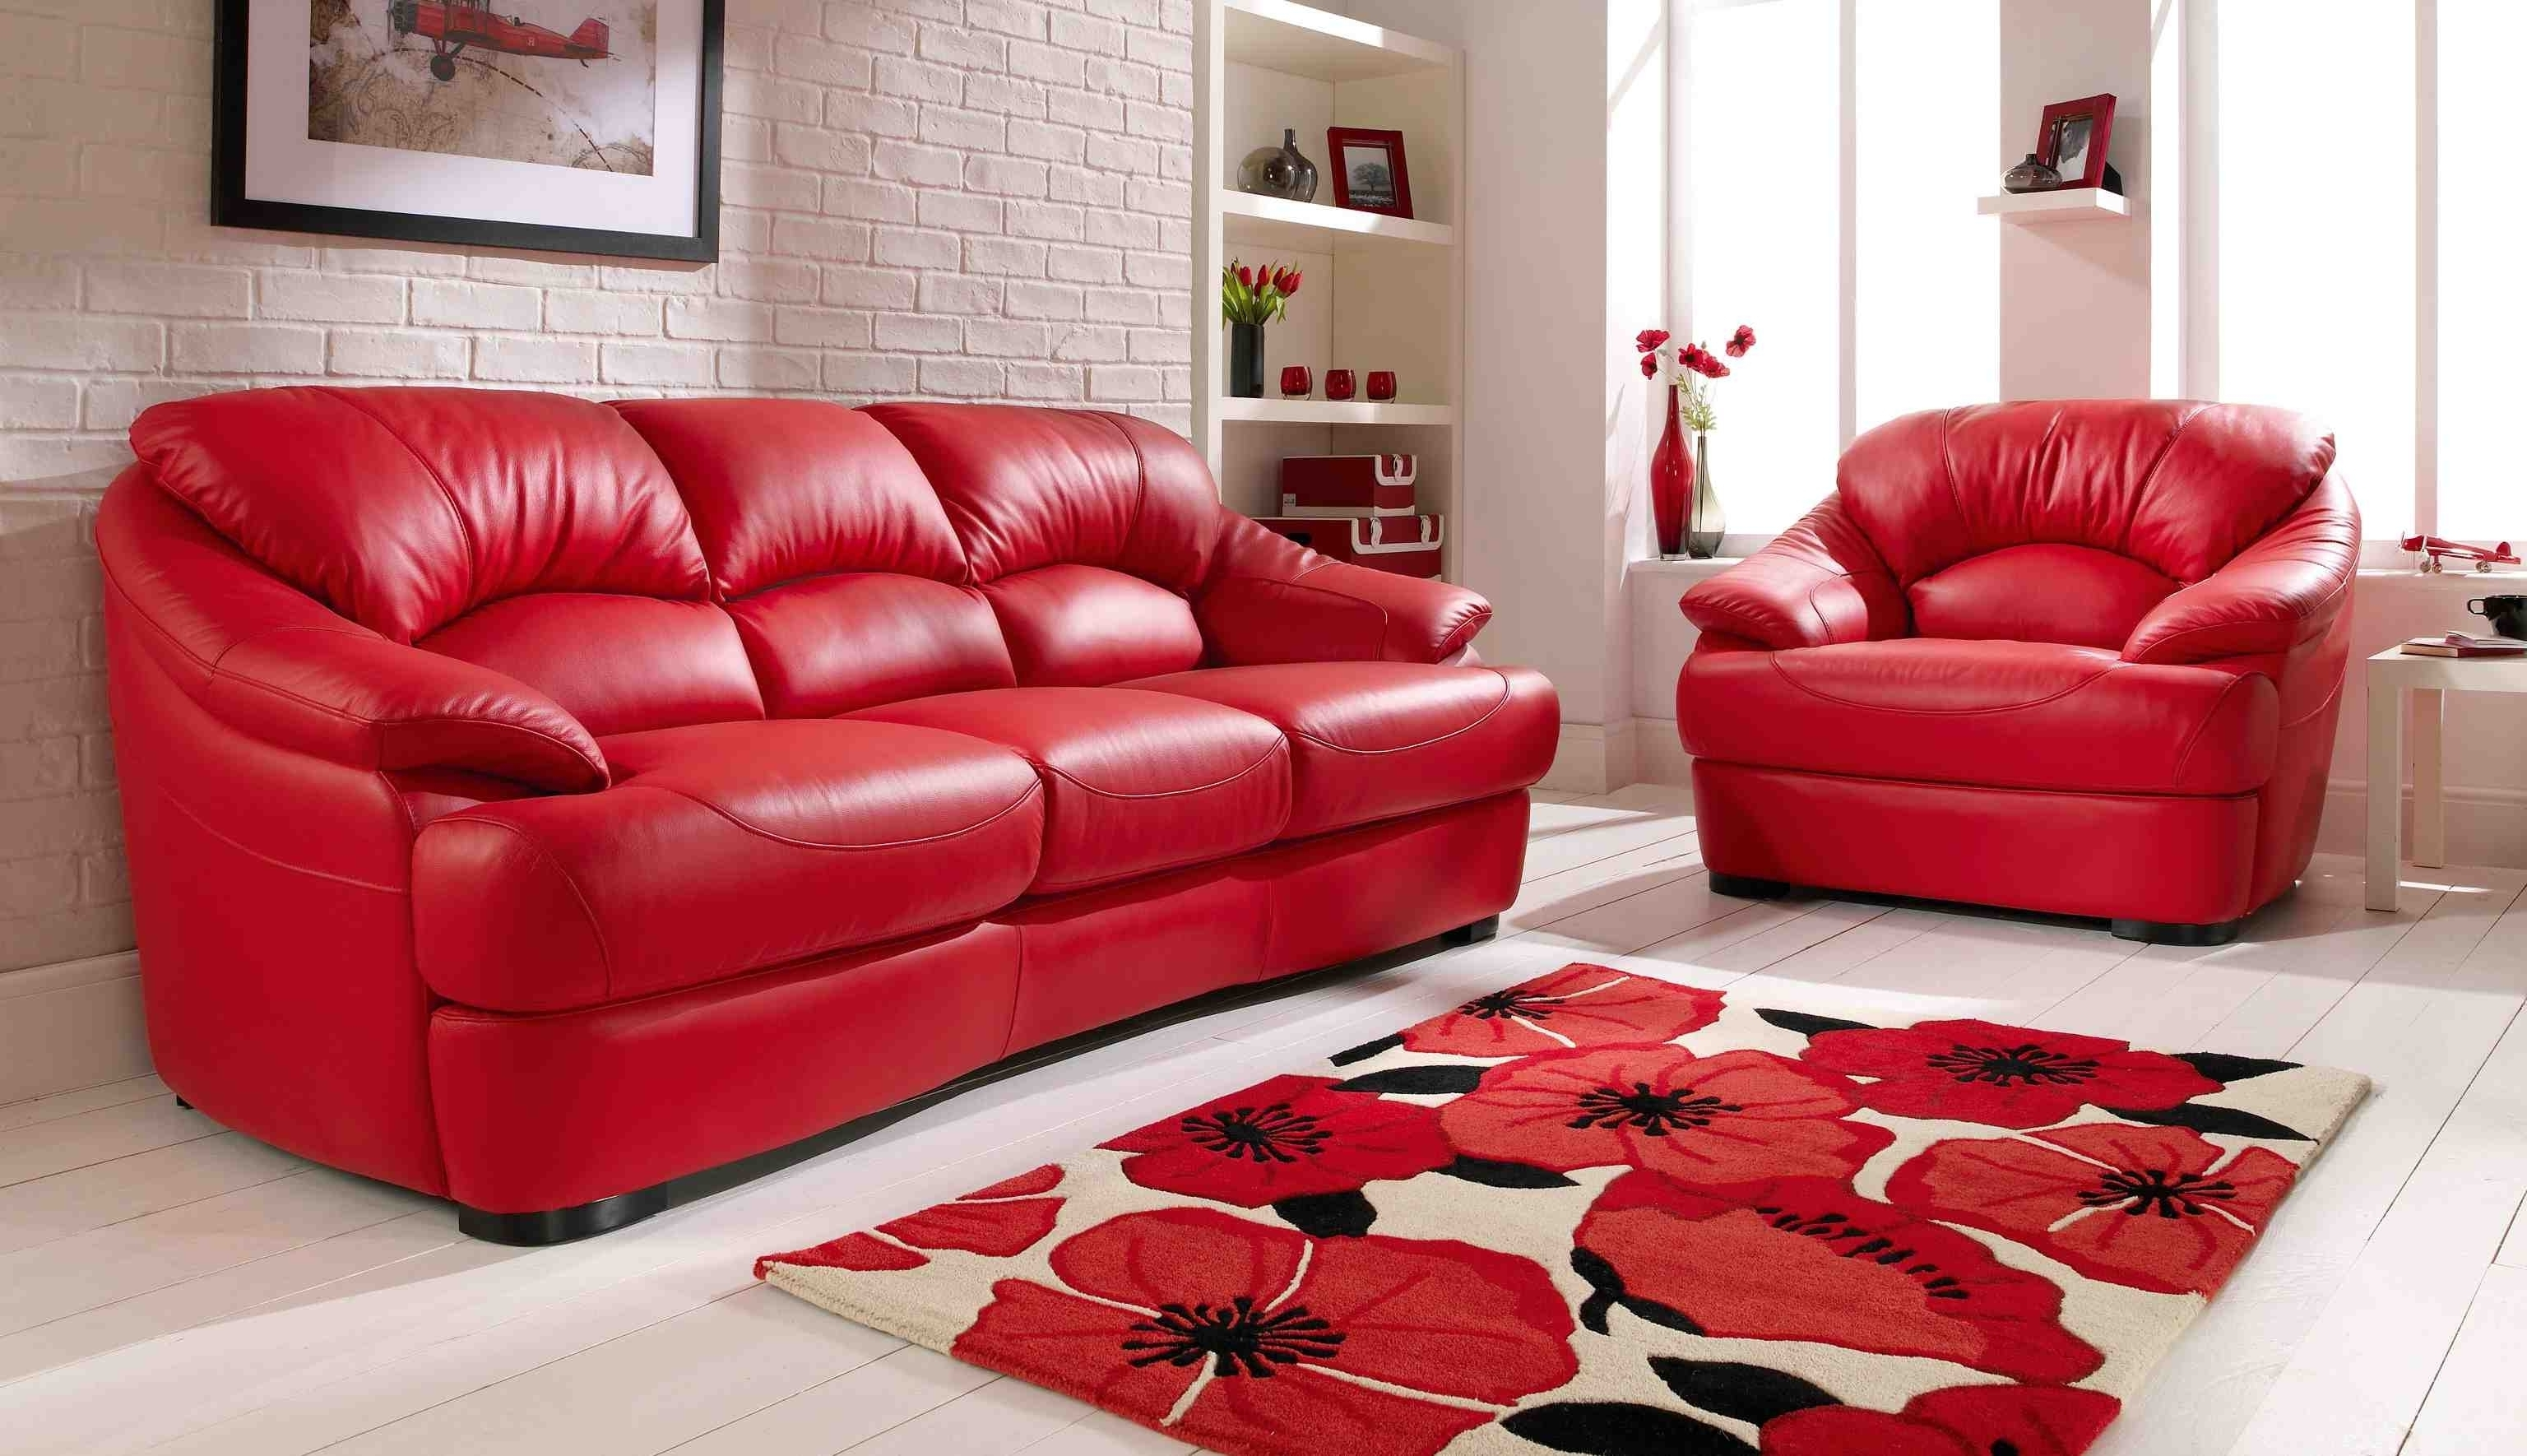 Widely Used Red Leather Sofa Living Room Ideas Home Design Ideas Pertaining To For Red Leather Couches For Living Room (View 13 of 20)